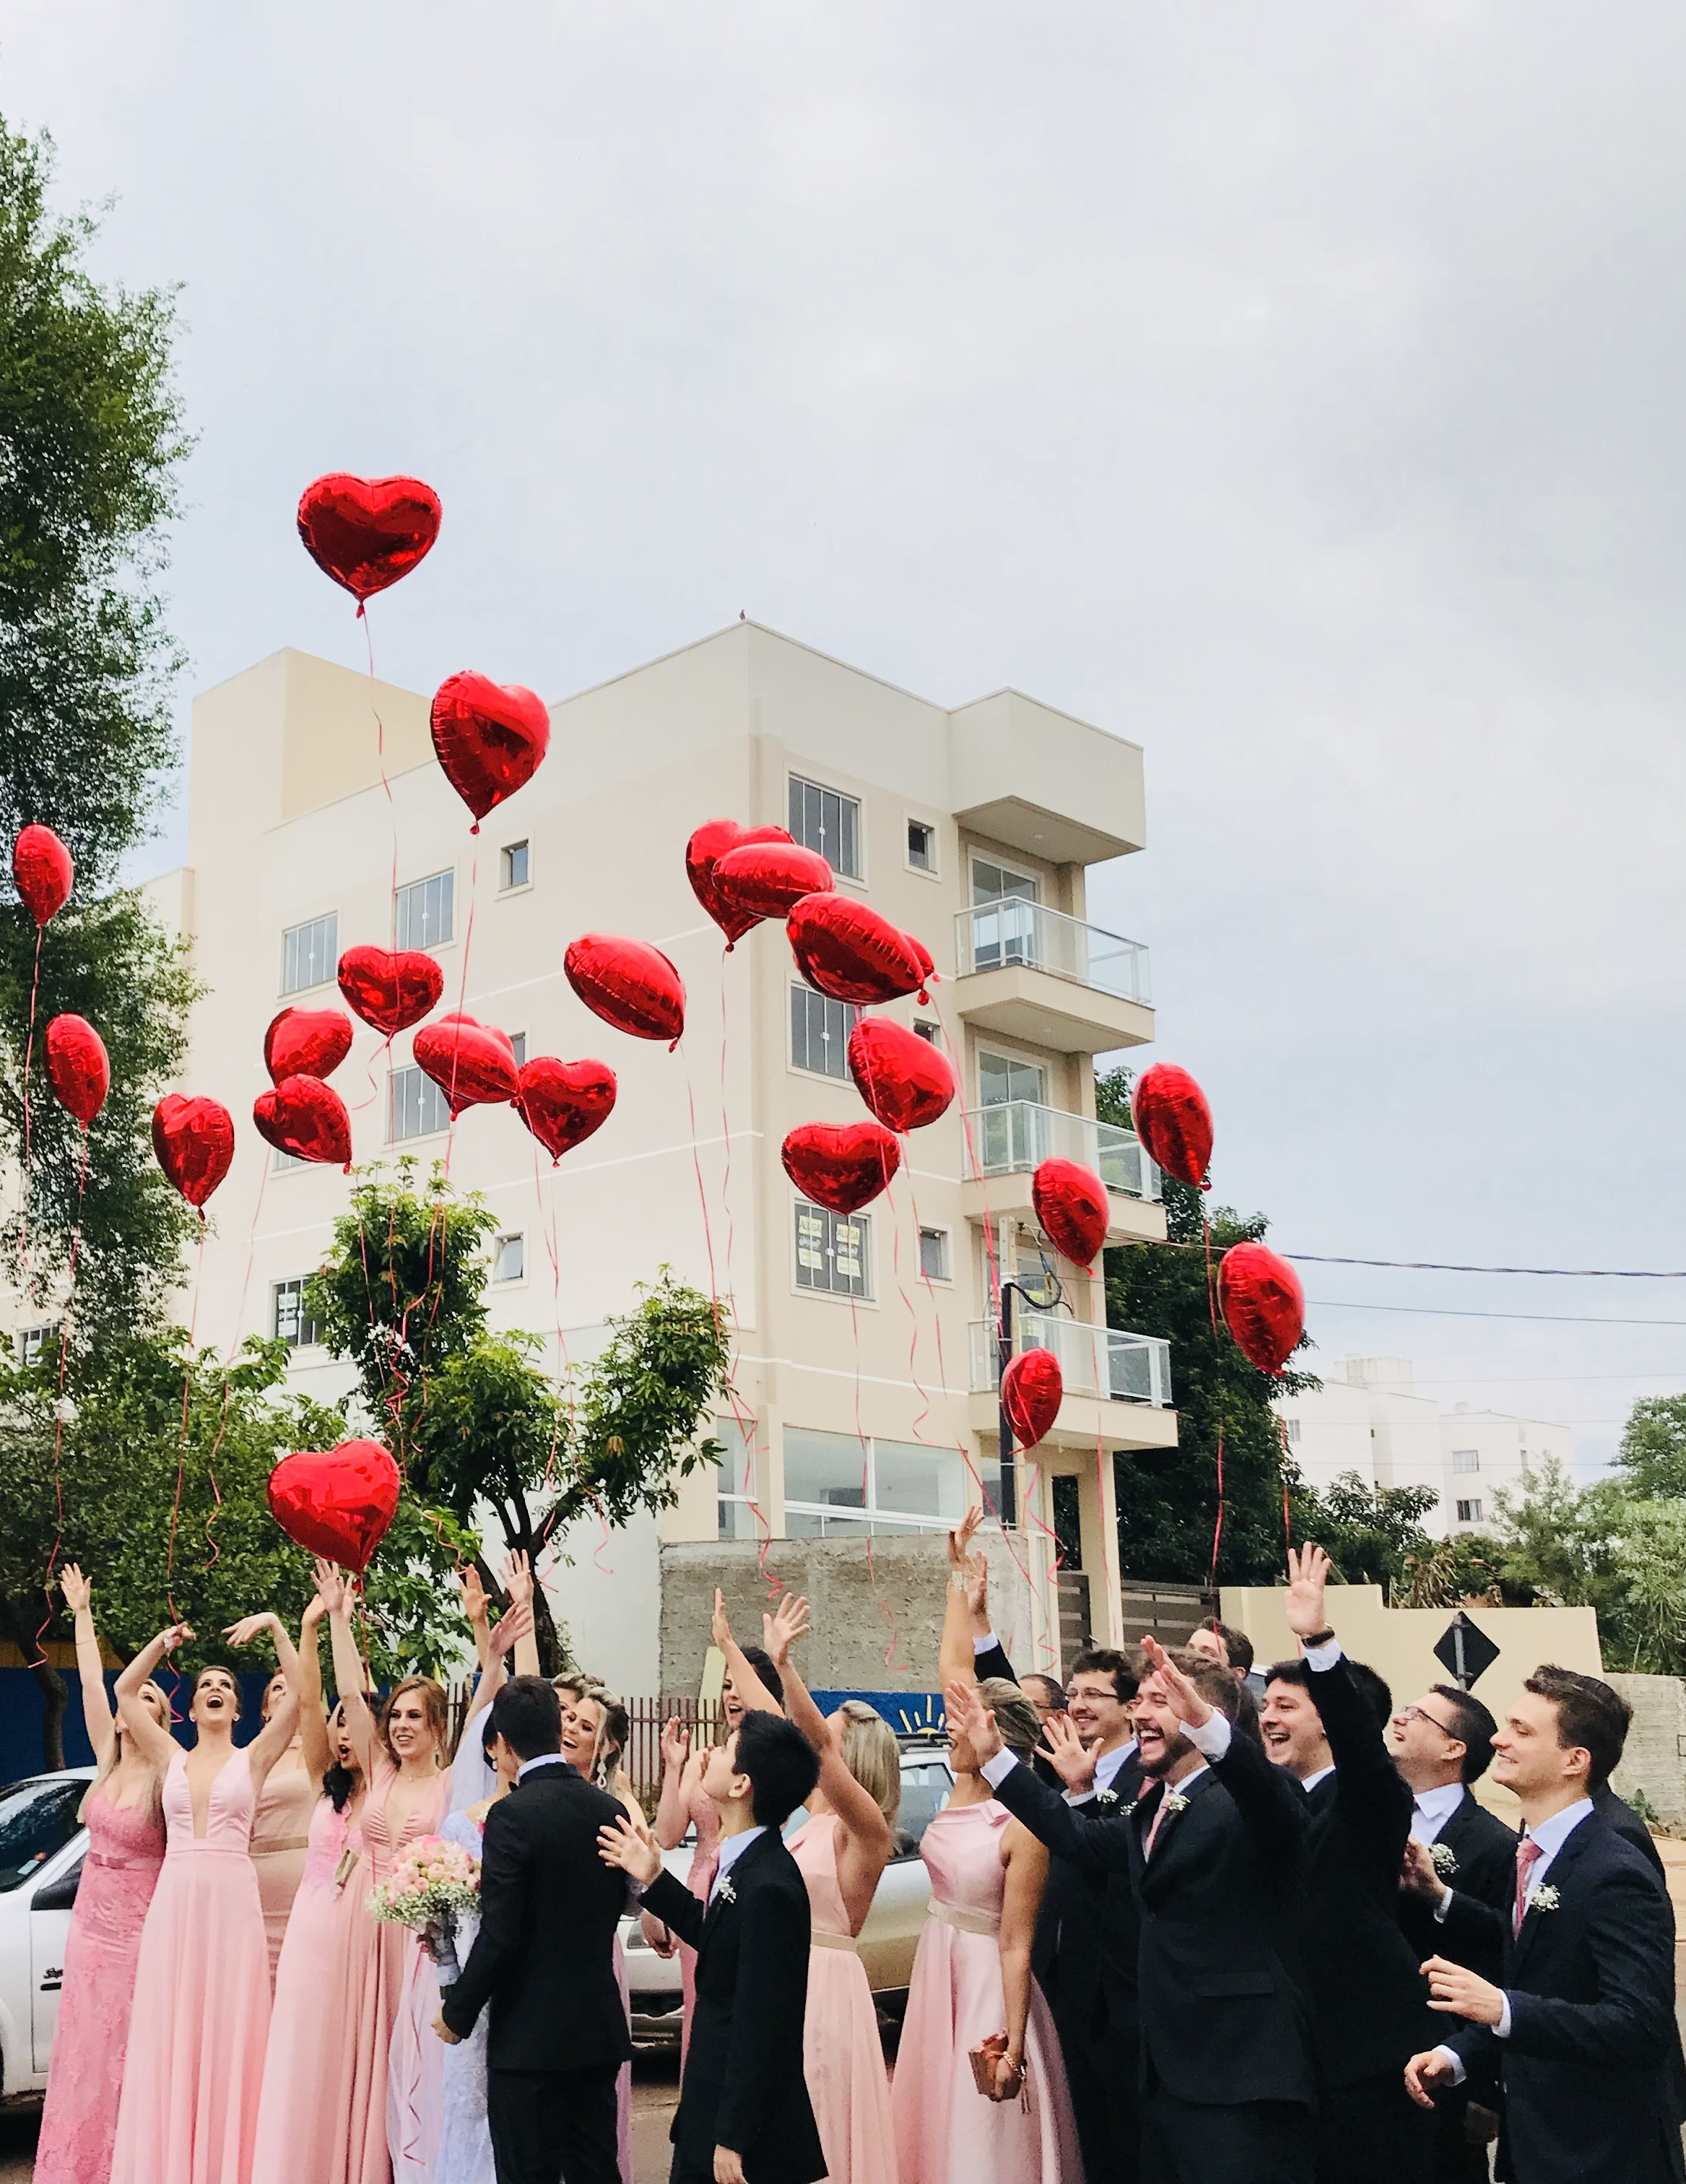 Women Wearing Pink Dresses and Men Wearing Black Suit Jacket and Pants Raising Hands With Red ...